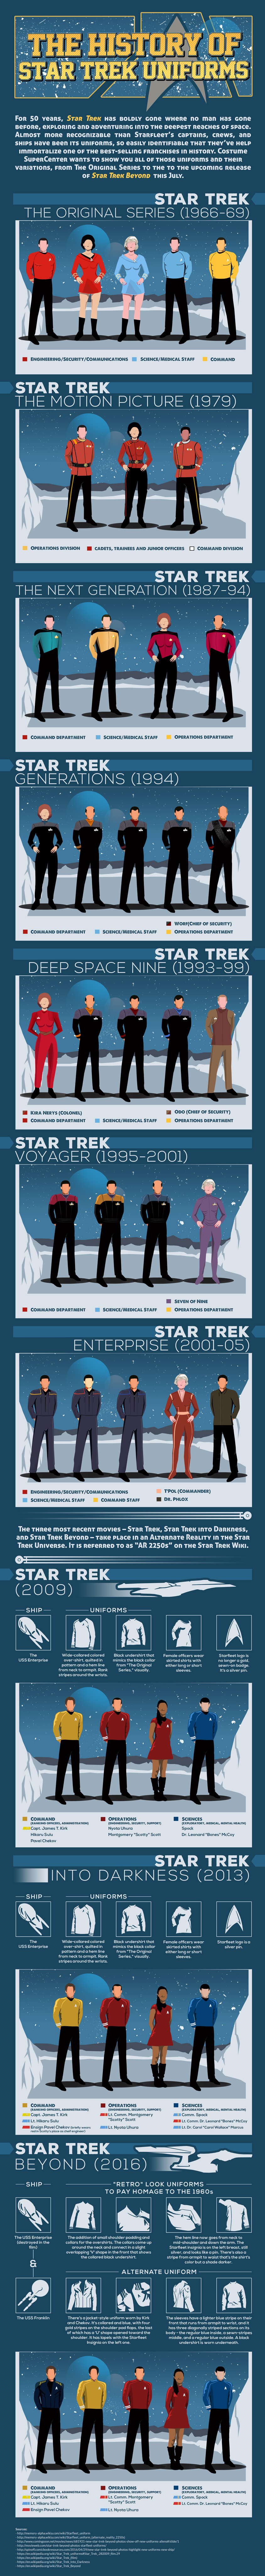 historia-star-trek-uniforms